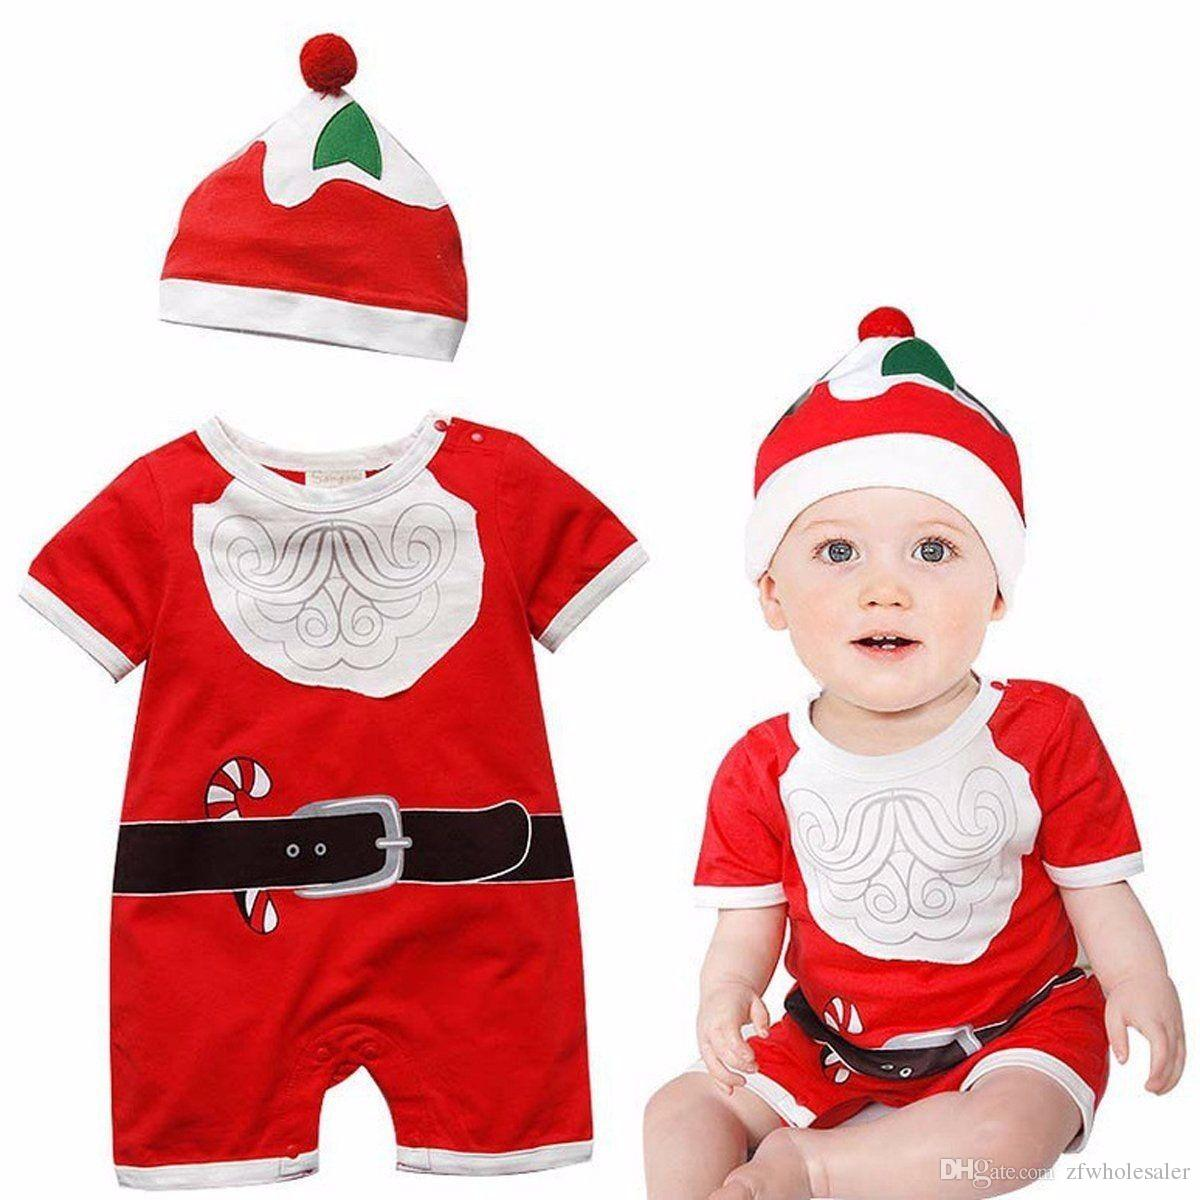 Christmas Baby Pajamas Newborn Romper Overall Infant Toddler Outfit Red Clothing Unisex New Year Clothes Kid Cotton Jumpsuit